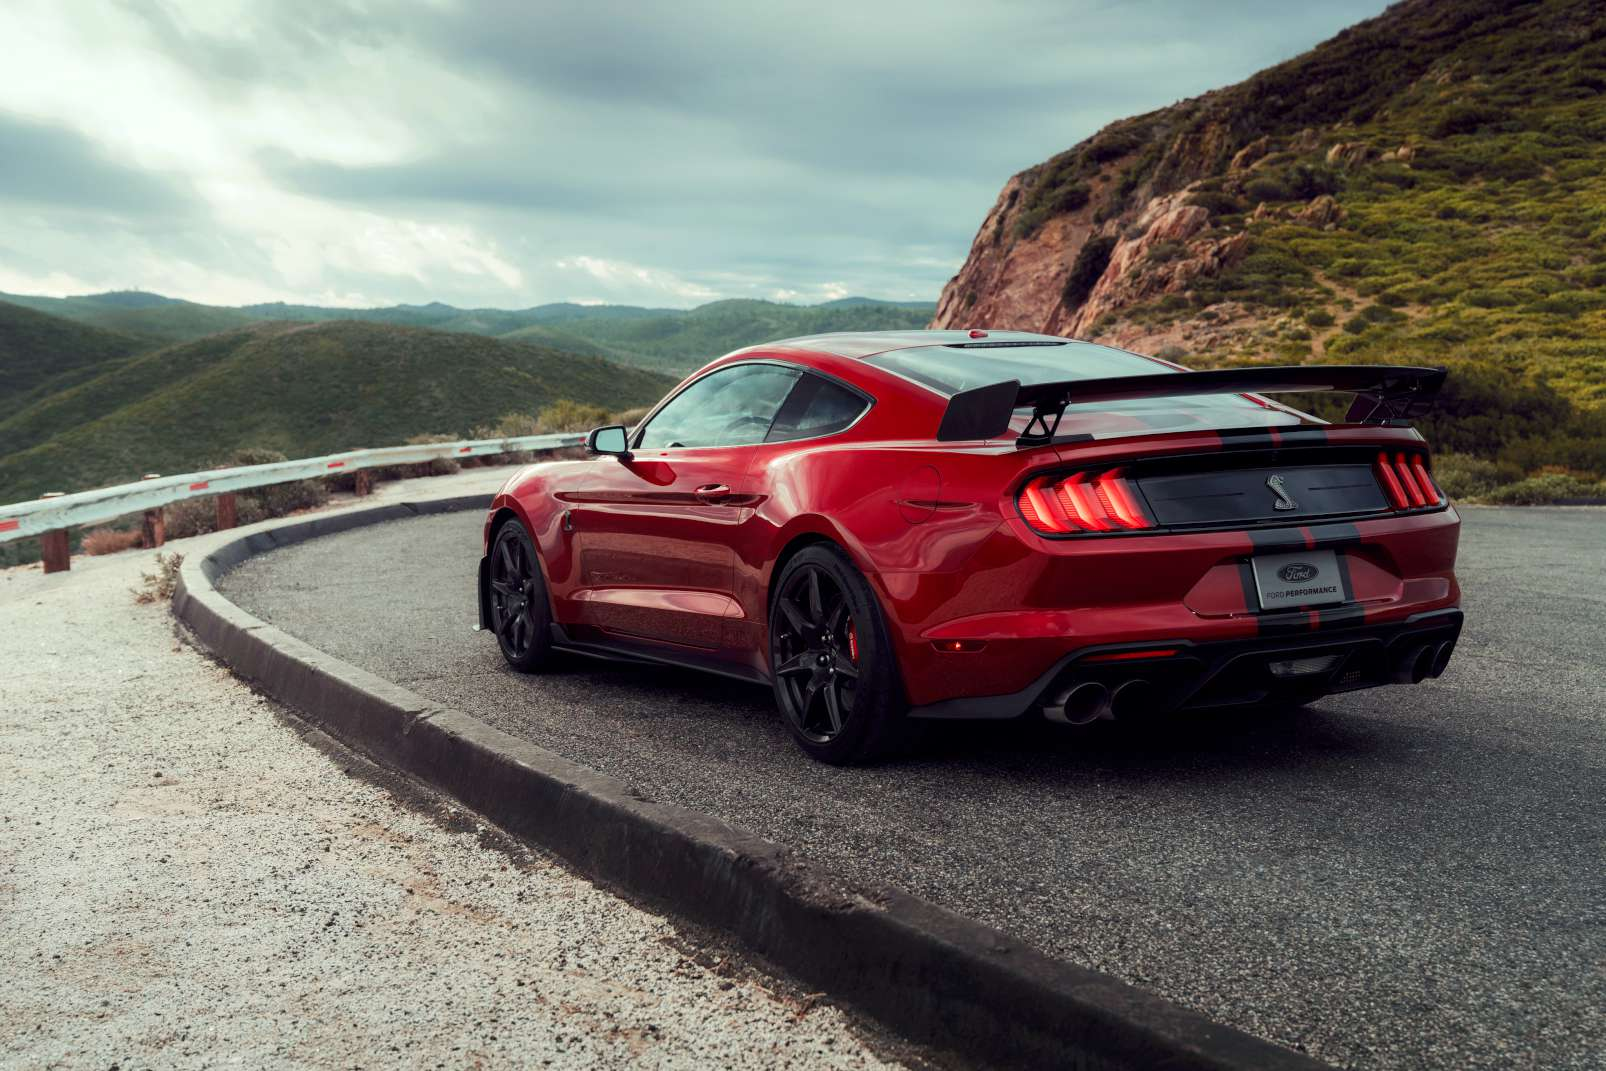 Ford Mustang Shelby GT 500